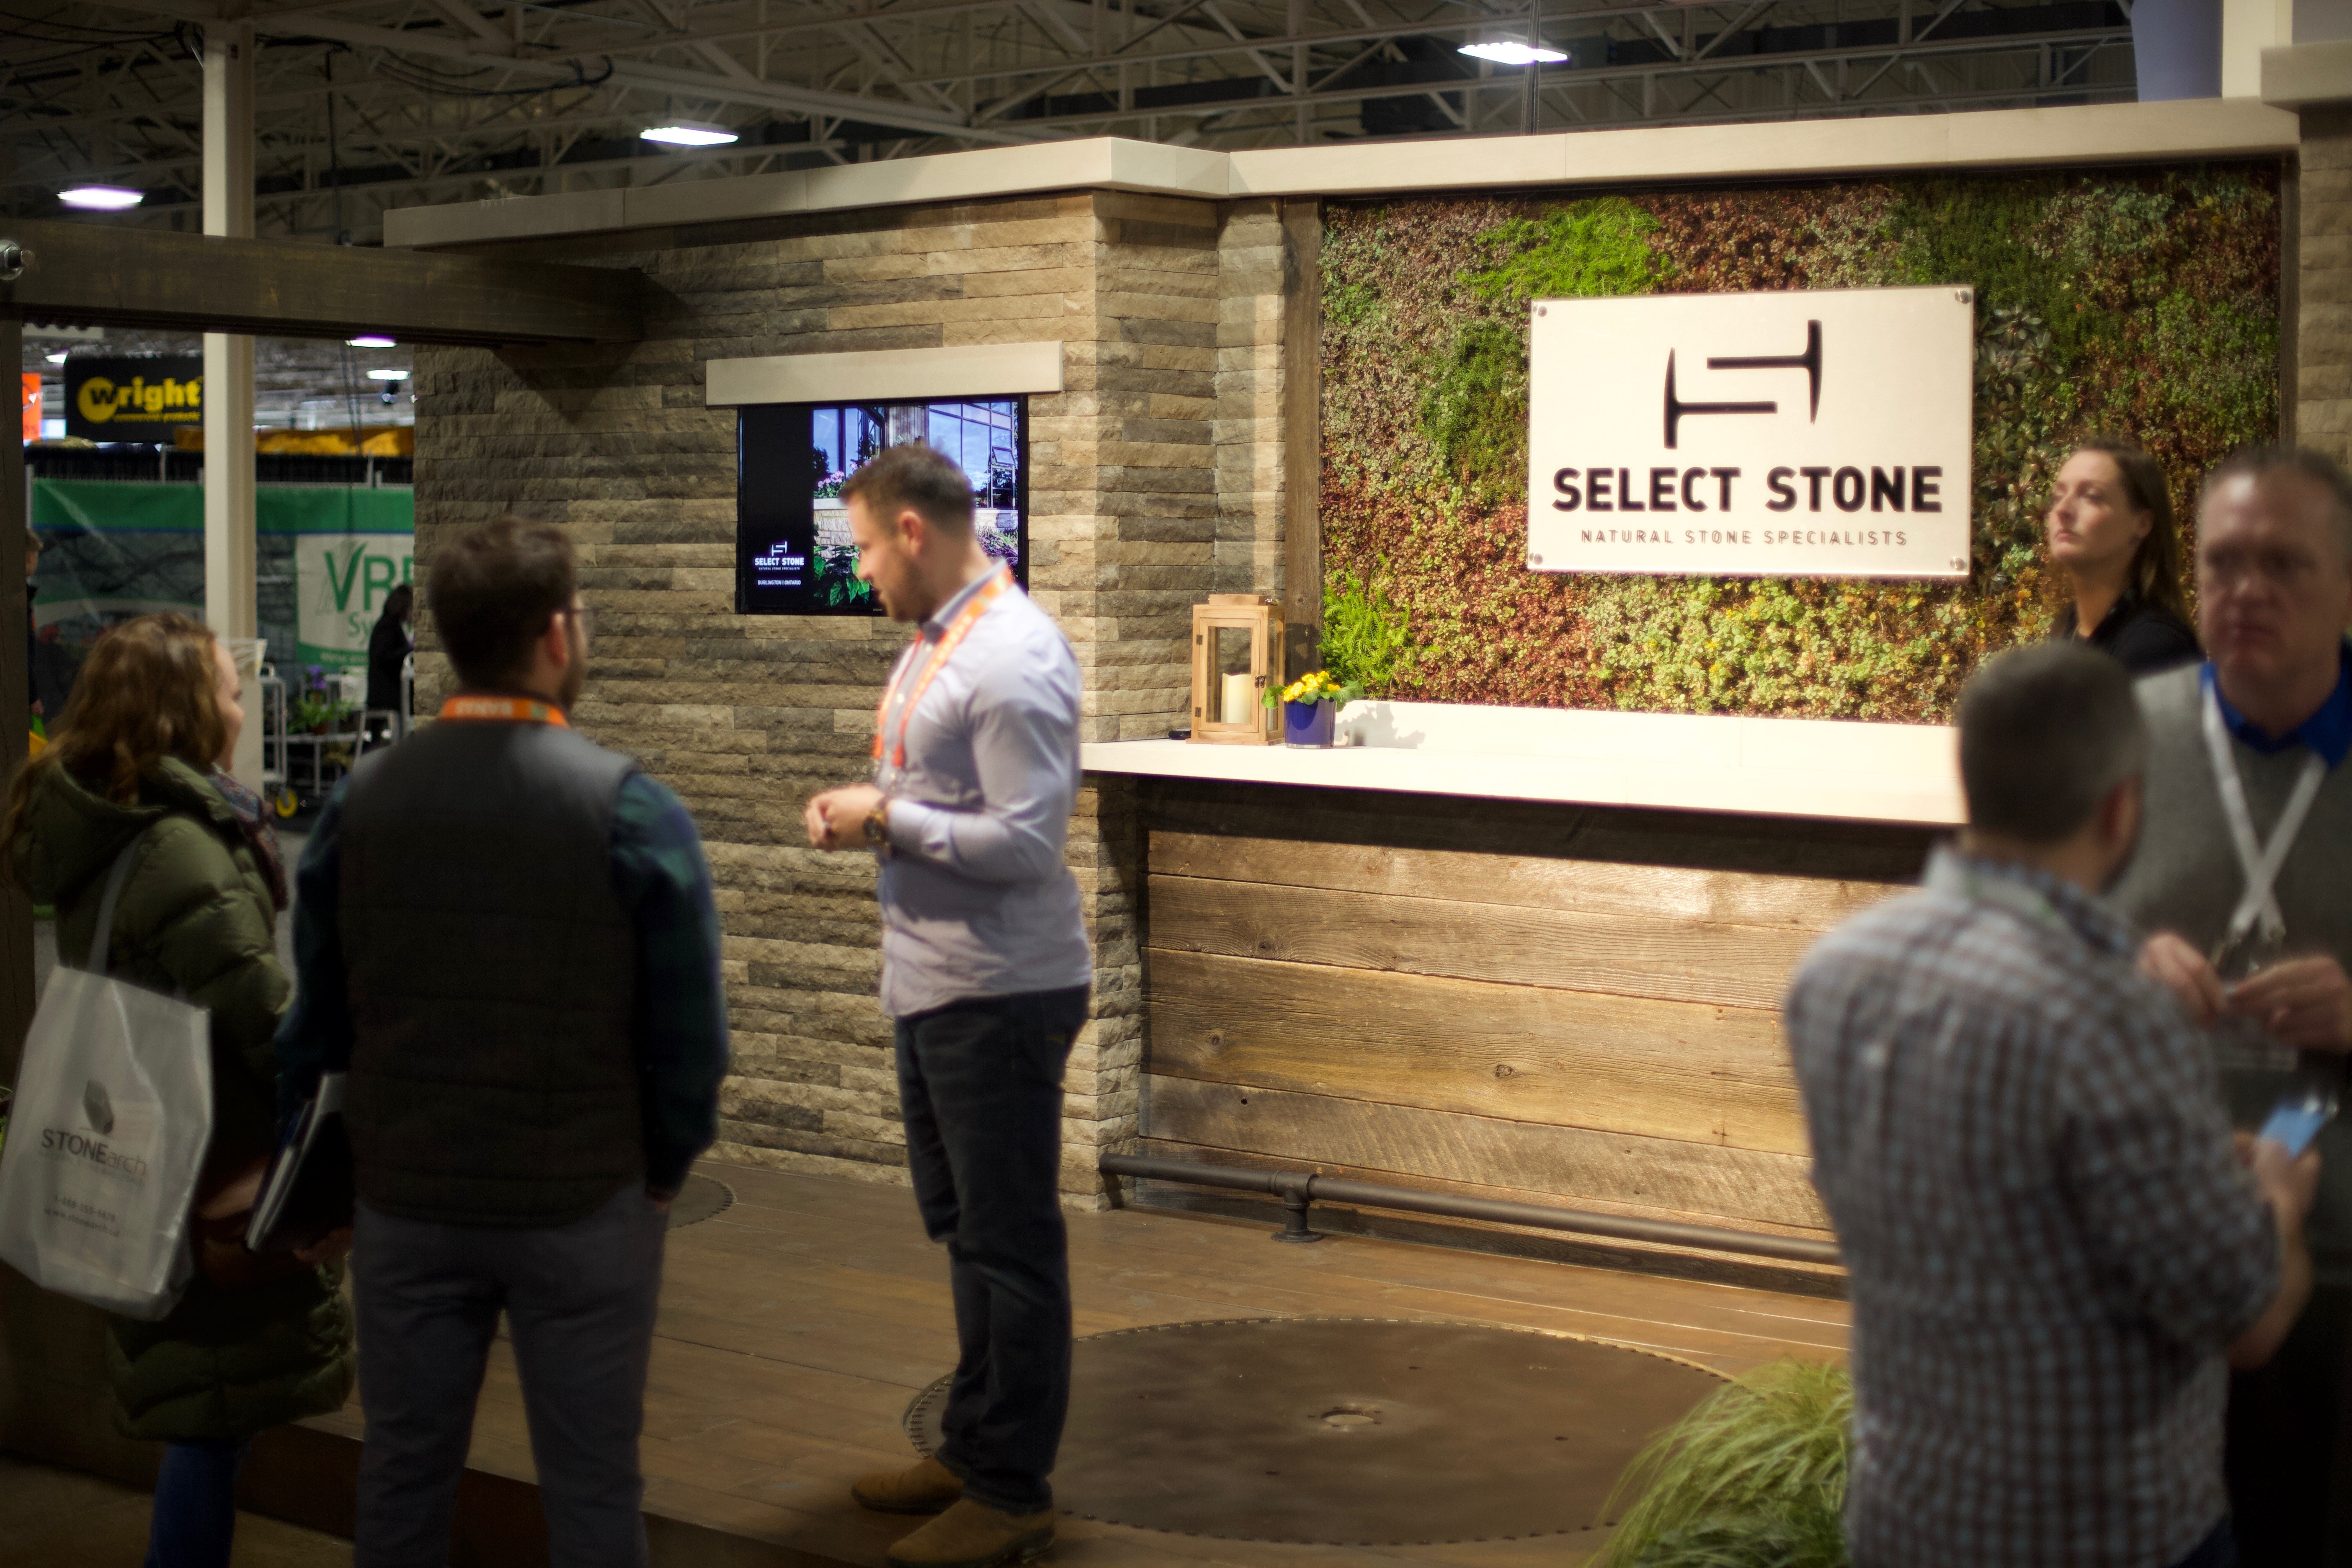 Select Stone's booth.